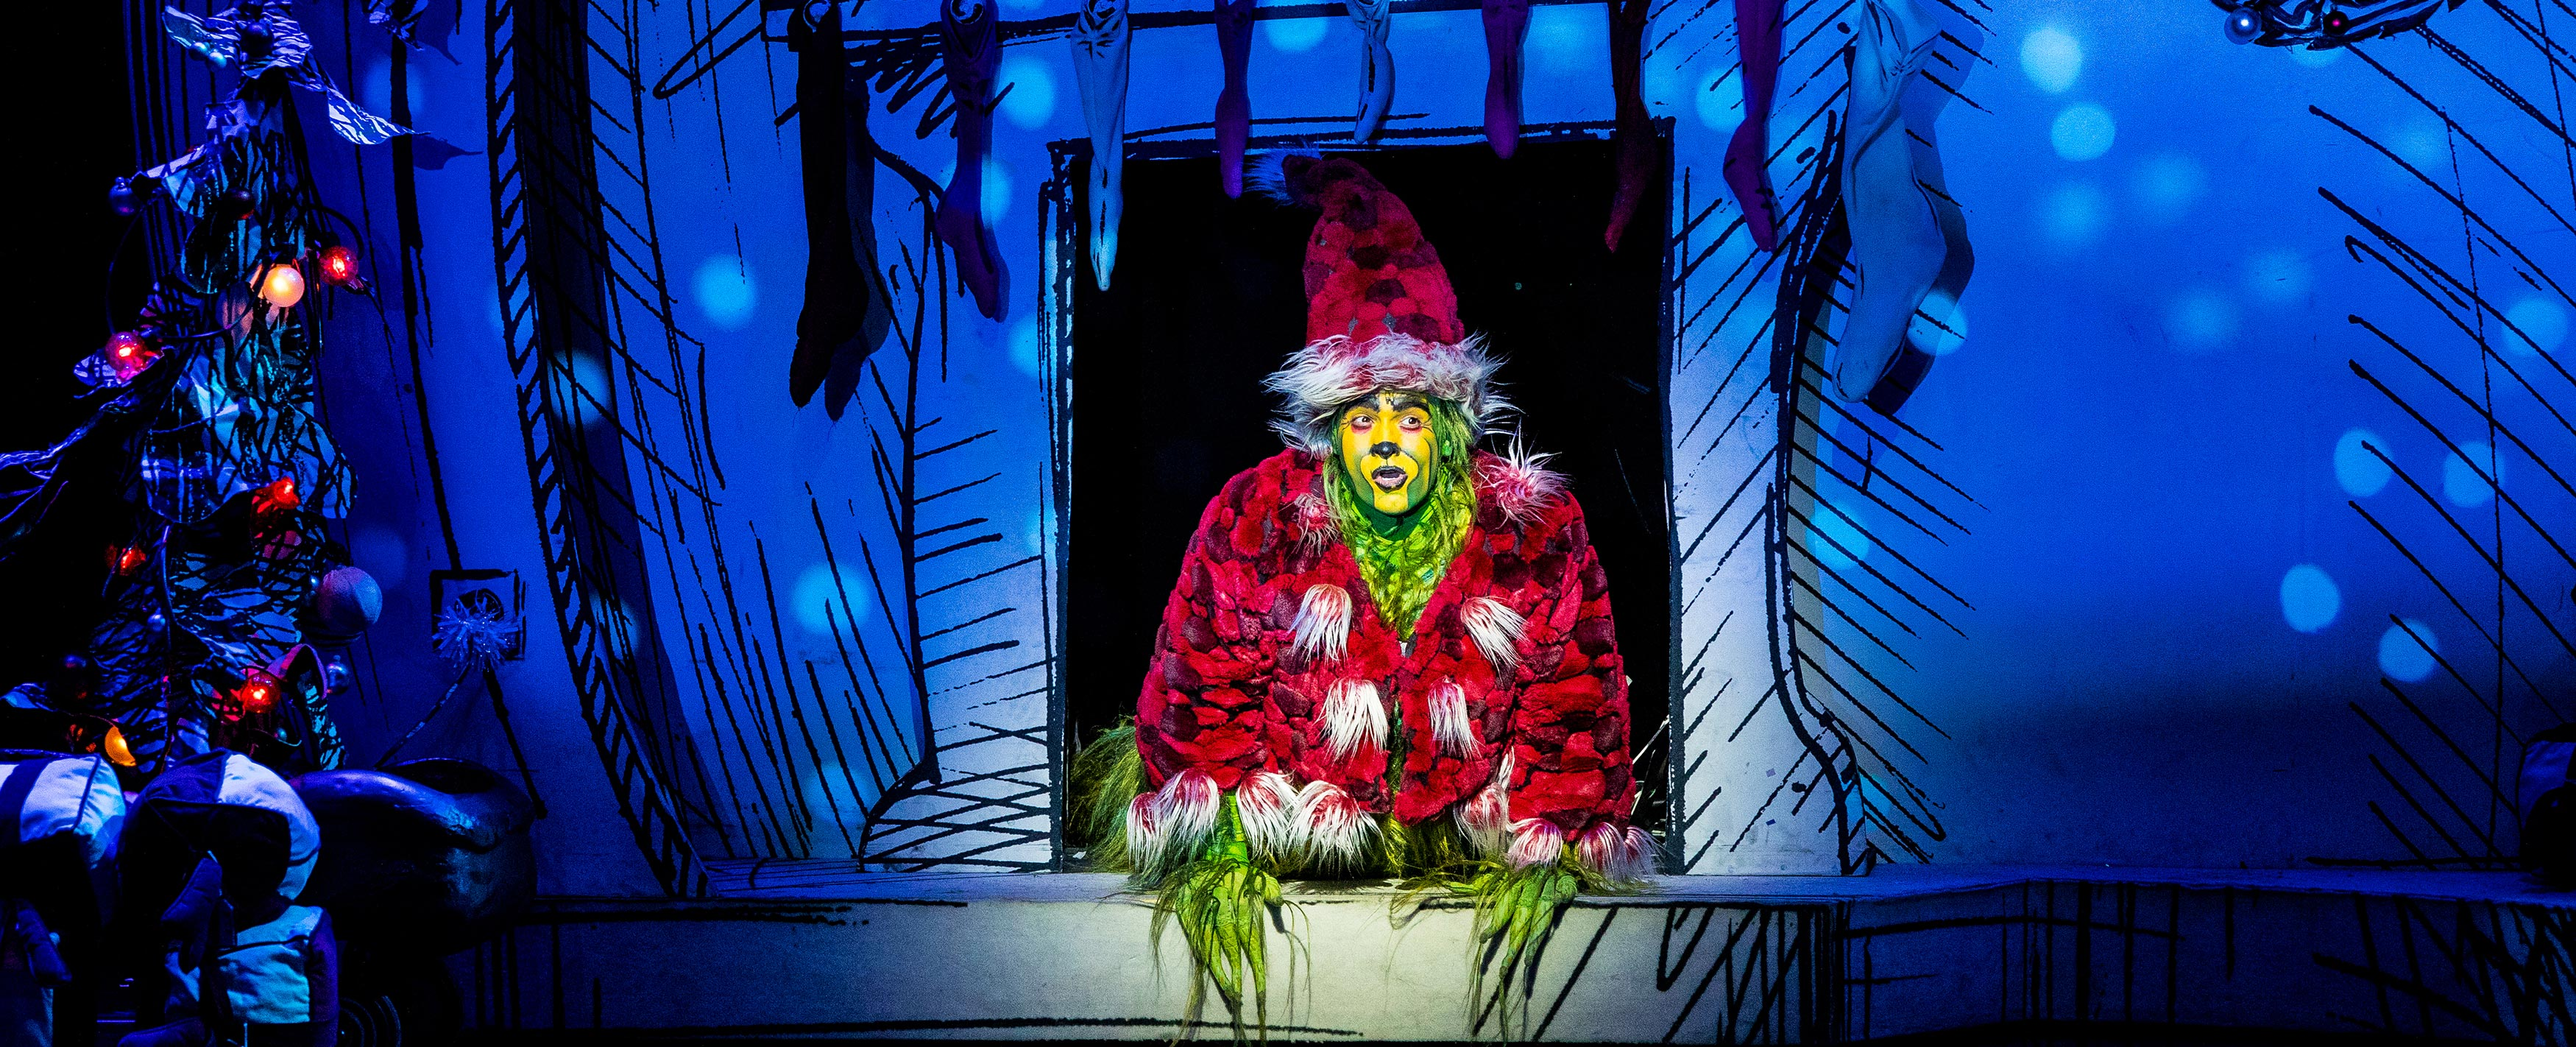 How The Grinch Stole Christmas Musical.Dr Seuss How The Grinch Stole Christmas Tickets Denver